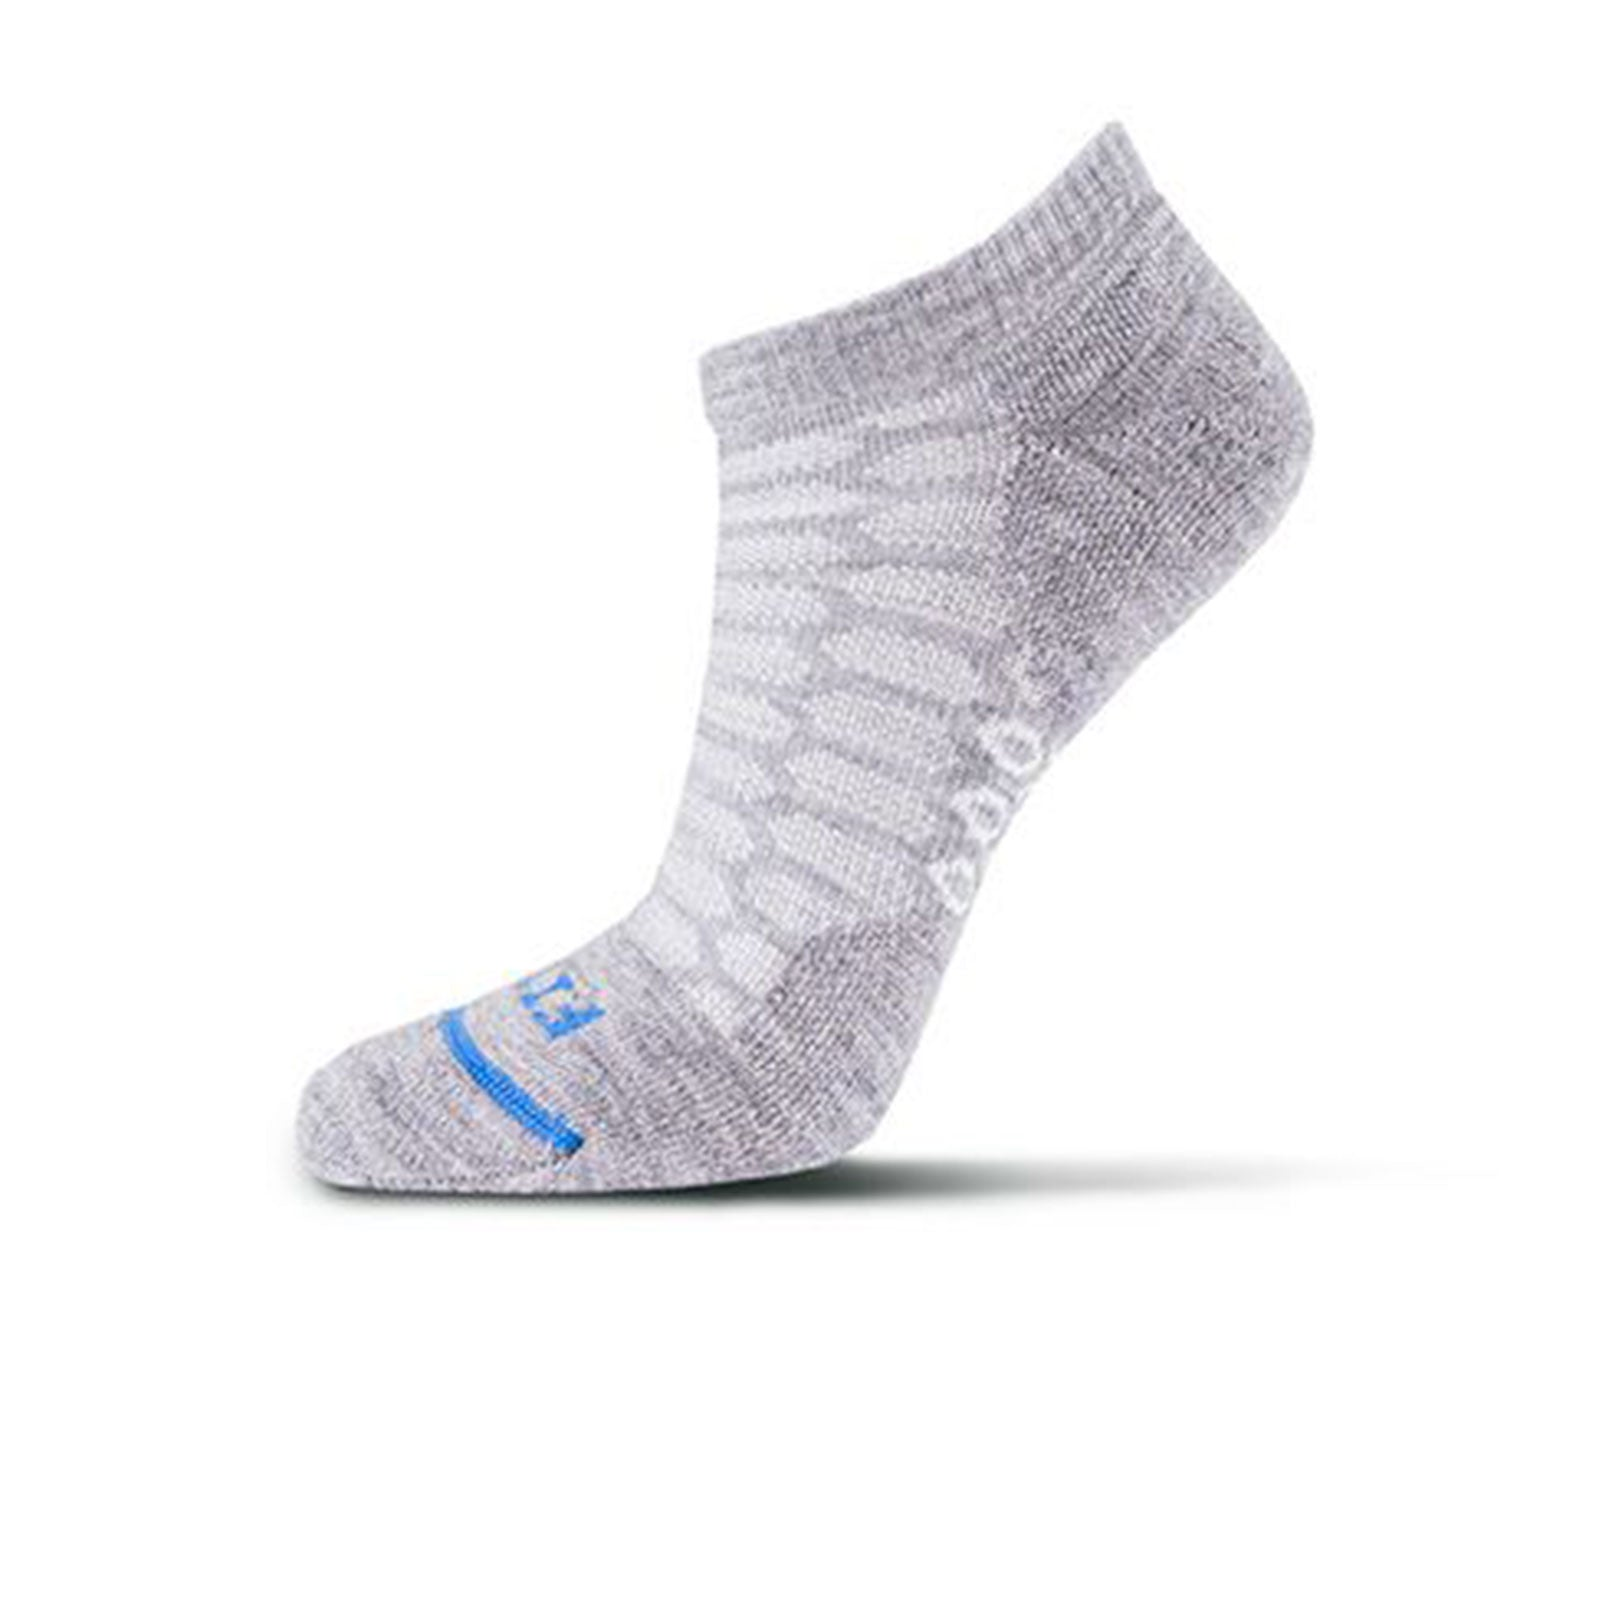 Fits Light Runner Low (Women) - Light Grey Socks - Life - No Show - The Heel Shoe Fitters